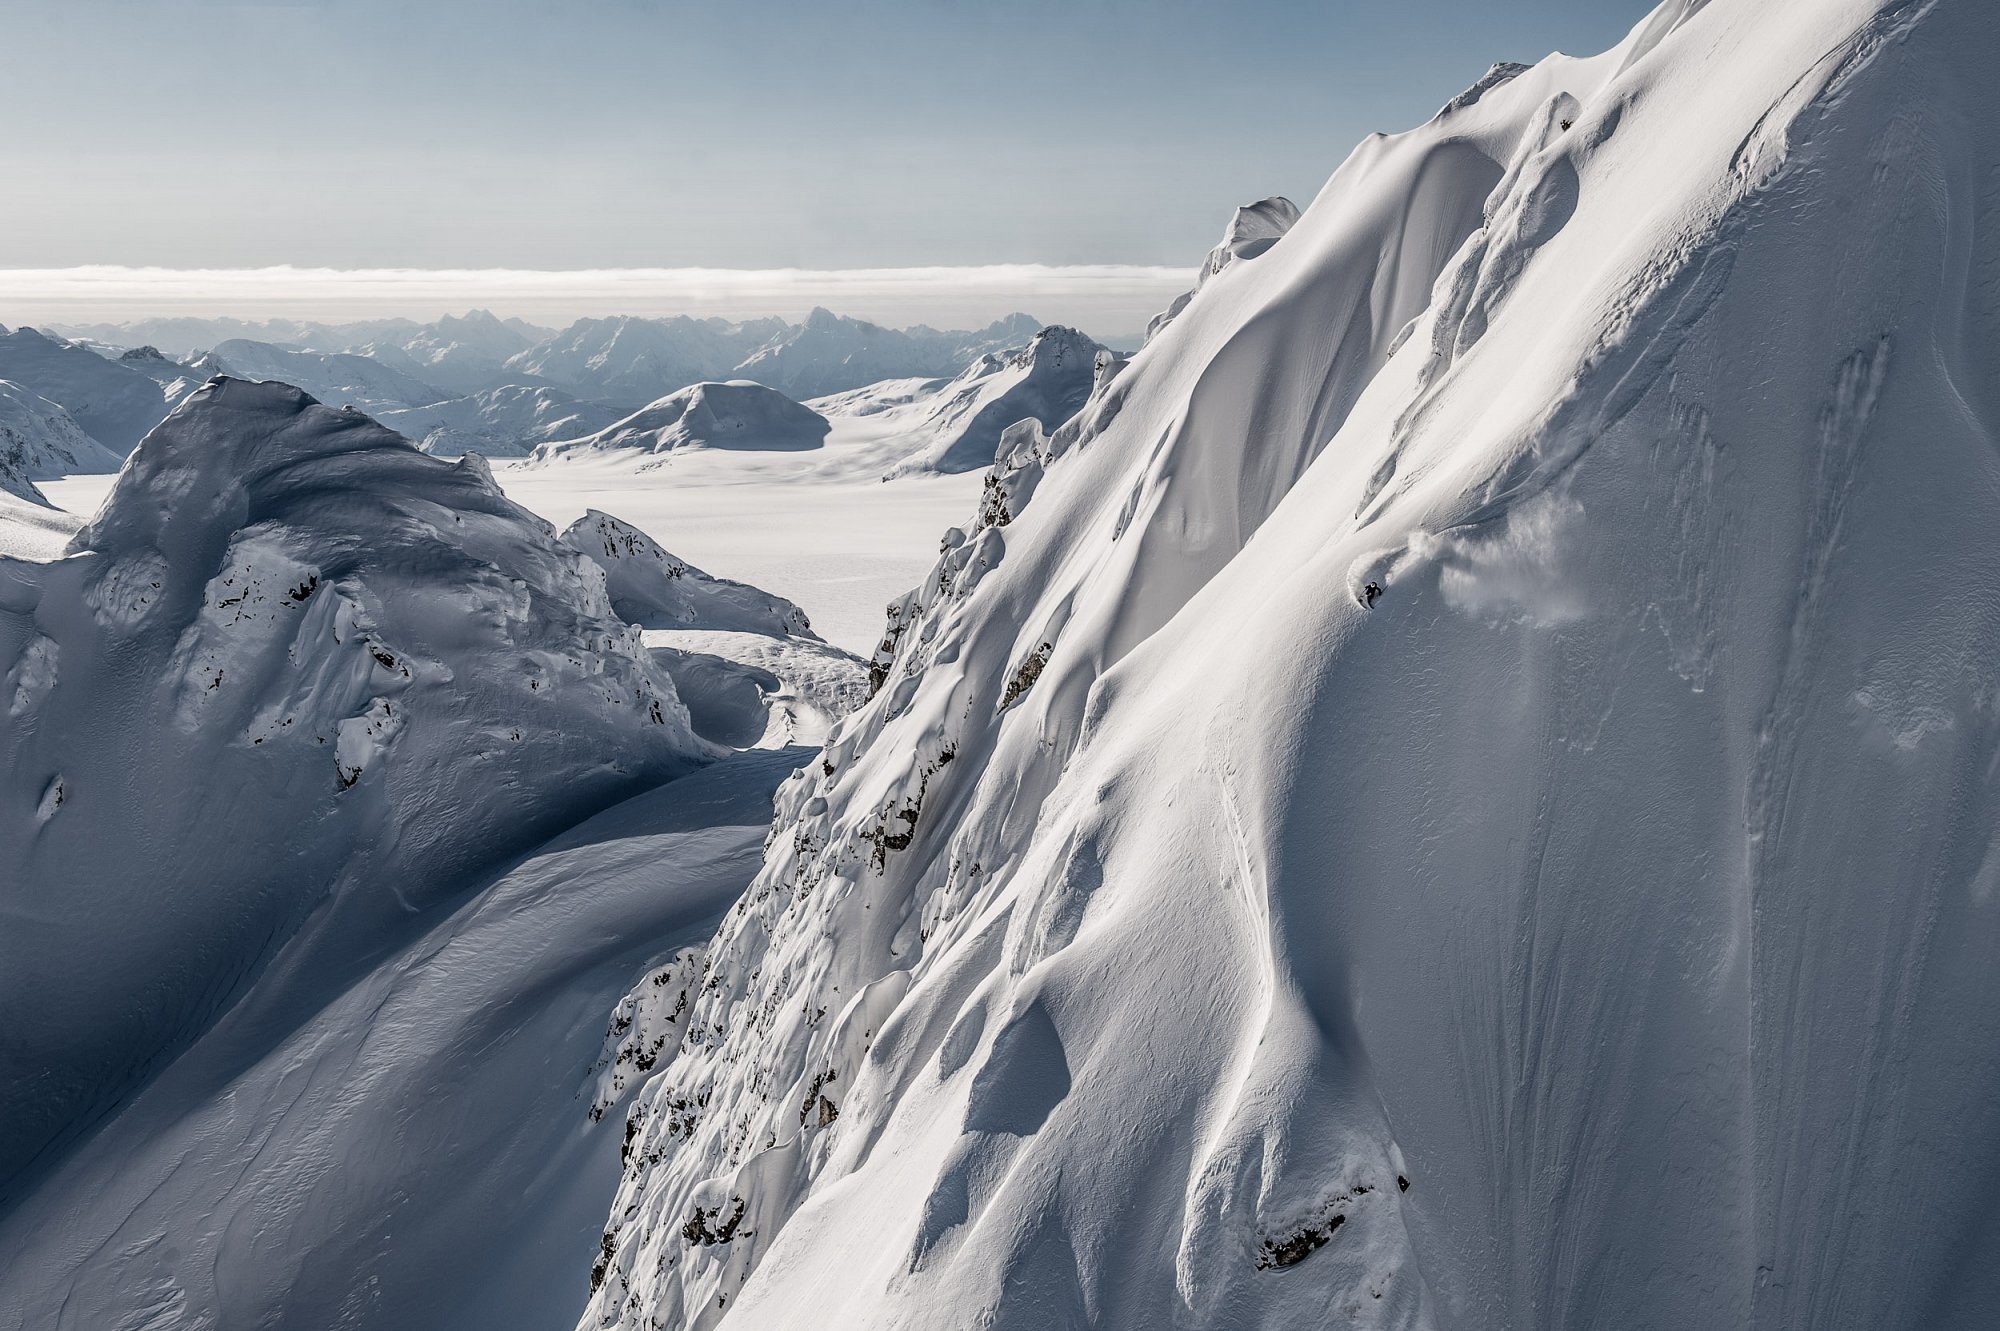 Aasmund Thorsen skiing Tomahawk in AK for Supervention 2.